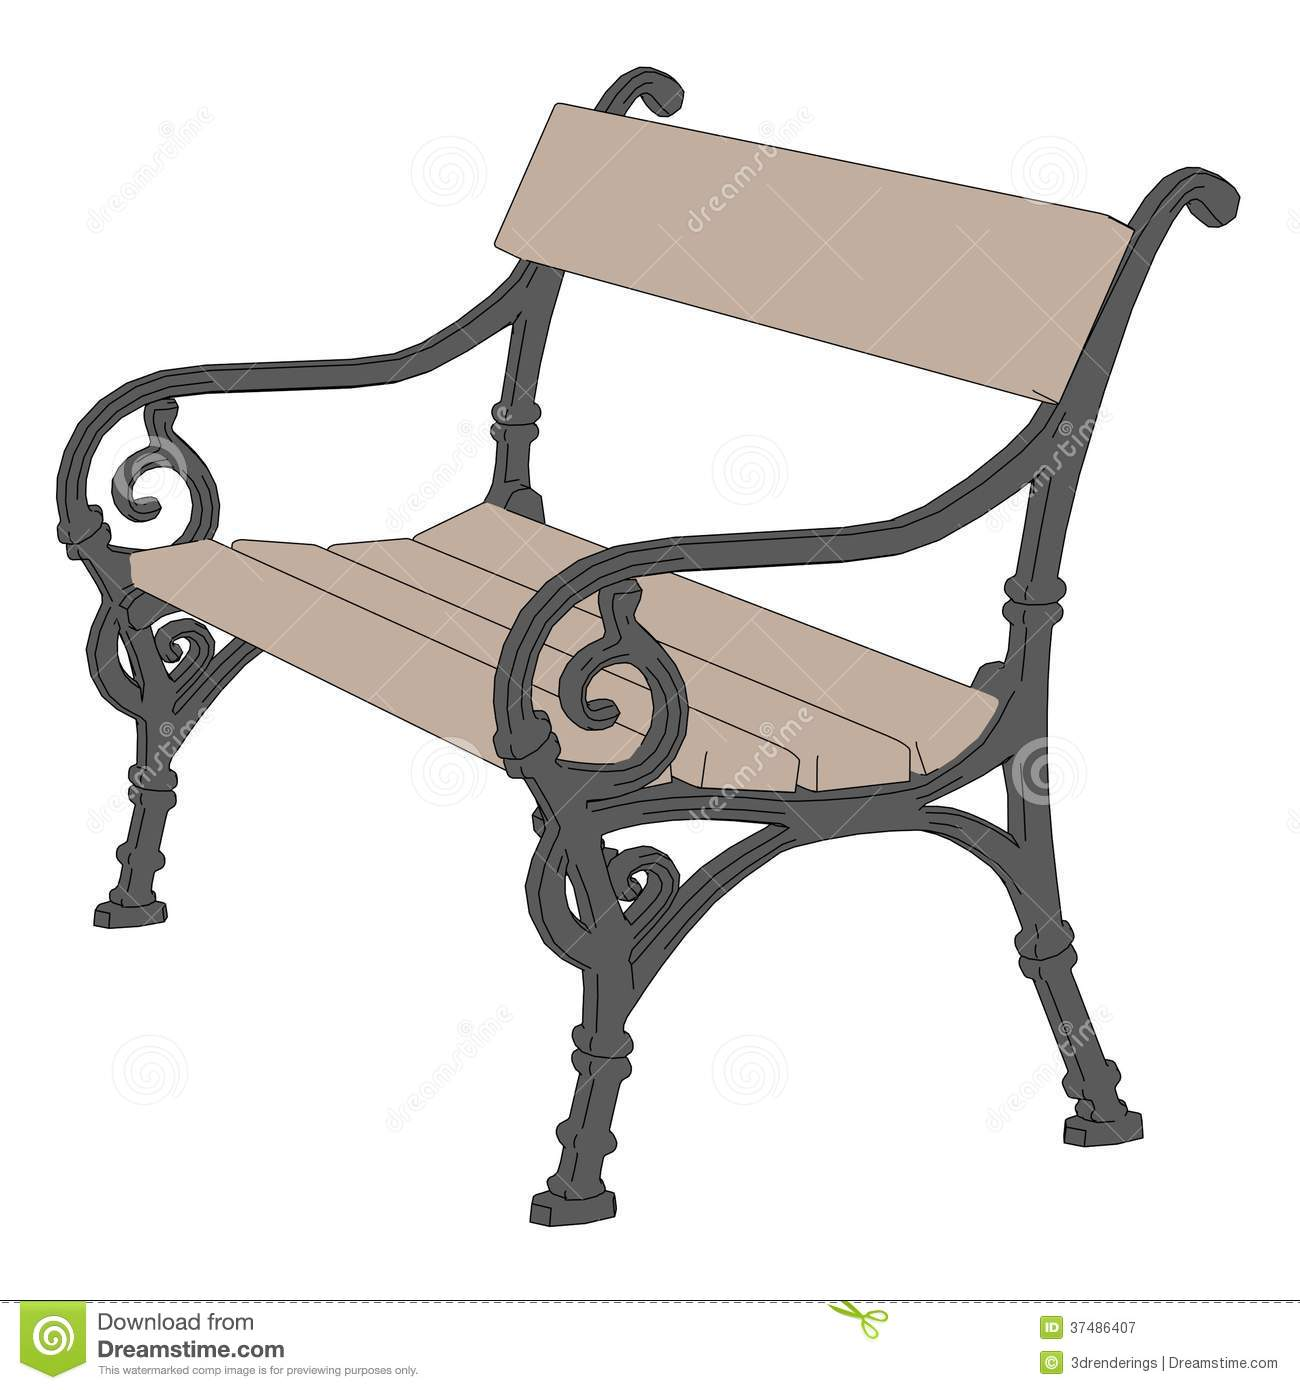 Image Of Park Bench Royalty Free Stock Photography - Image: 37486407